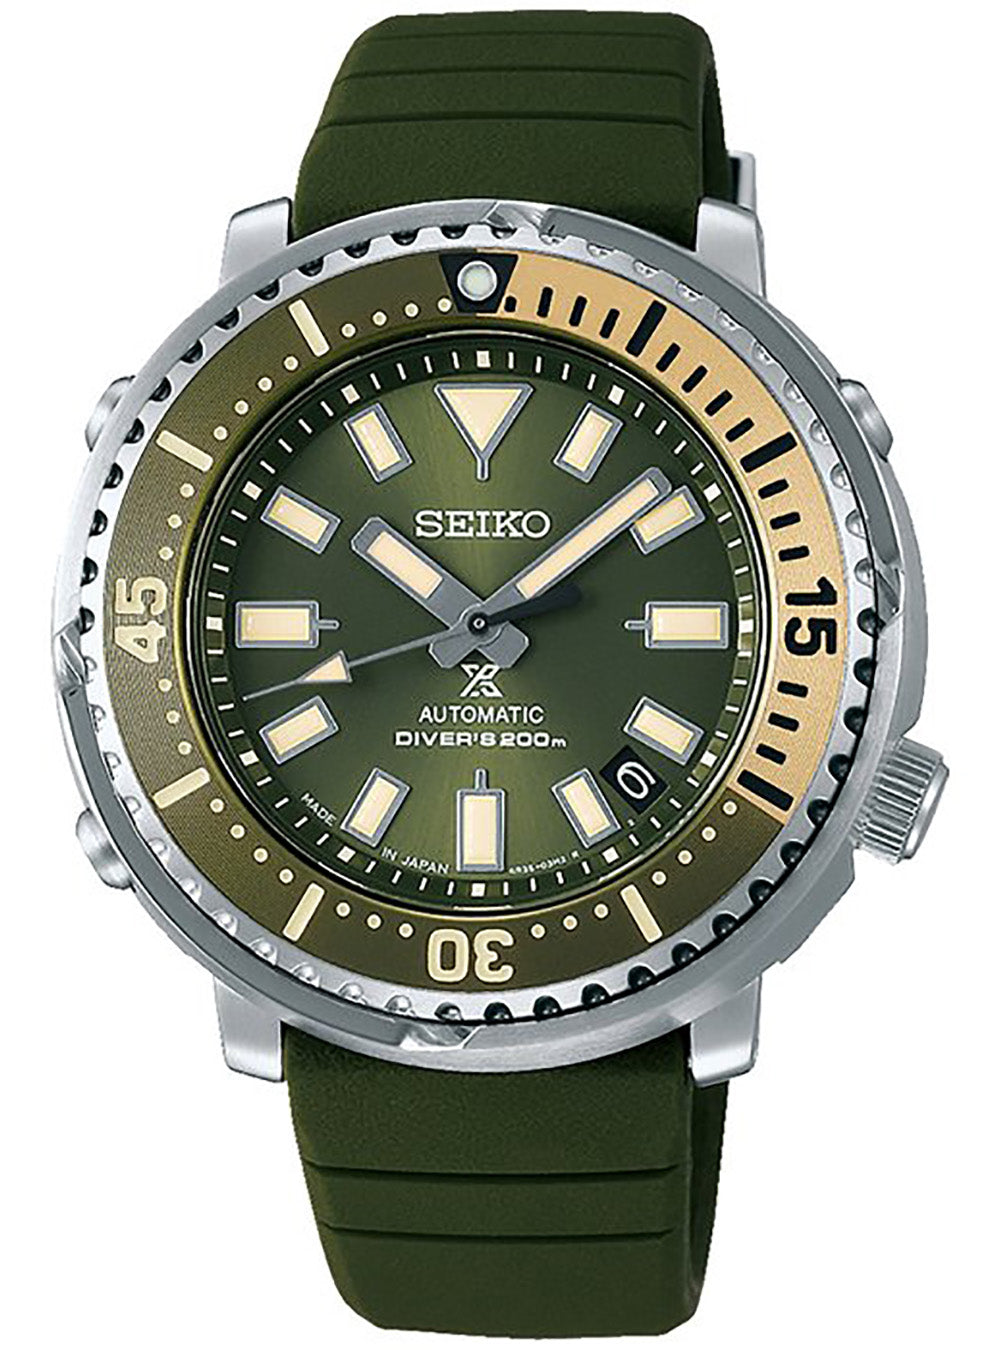 SEIKO PROSPEX DIVER SCUBA STREET SAFARI SBDY075 MENS LIMITED EDITION MADE IN JAPAN JDM